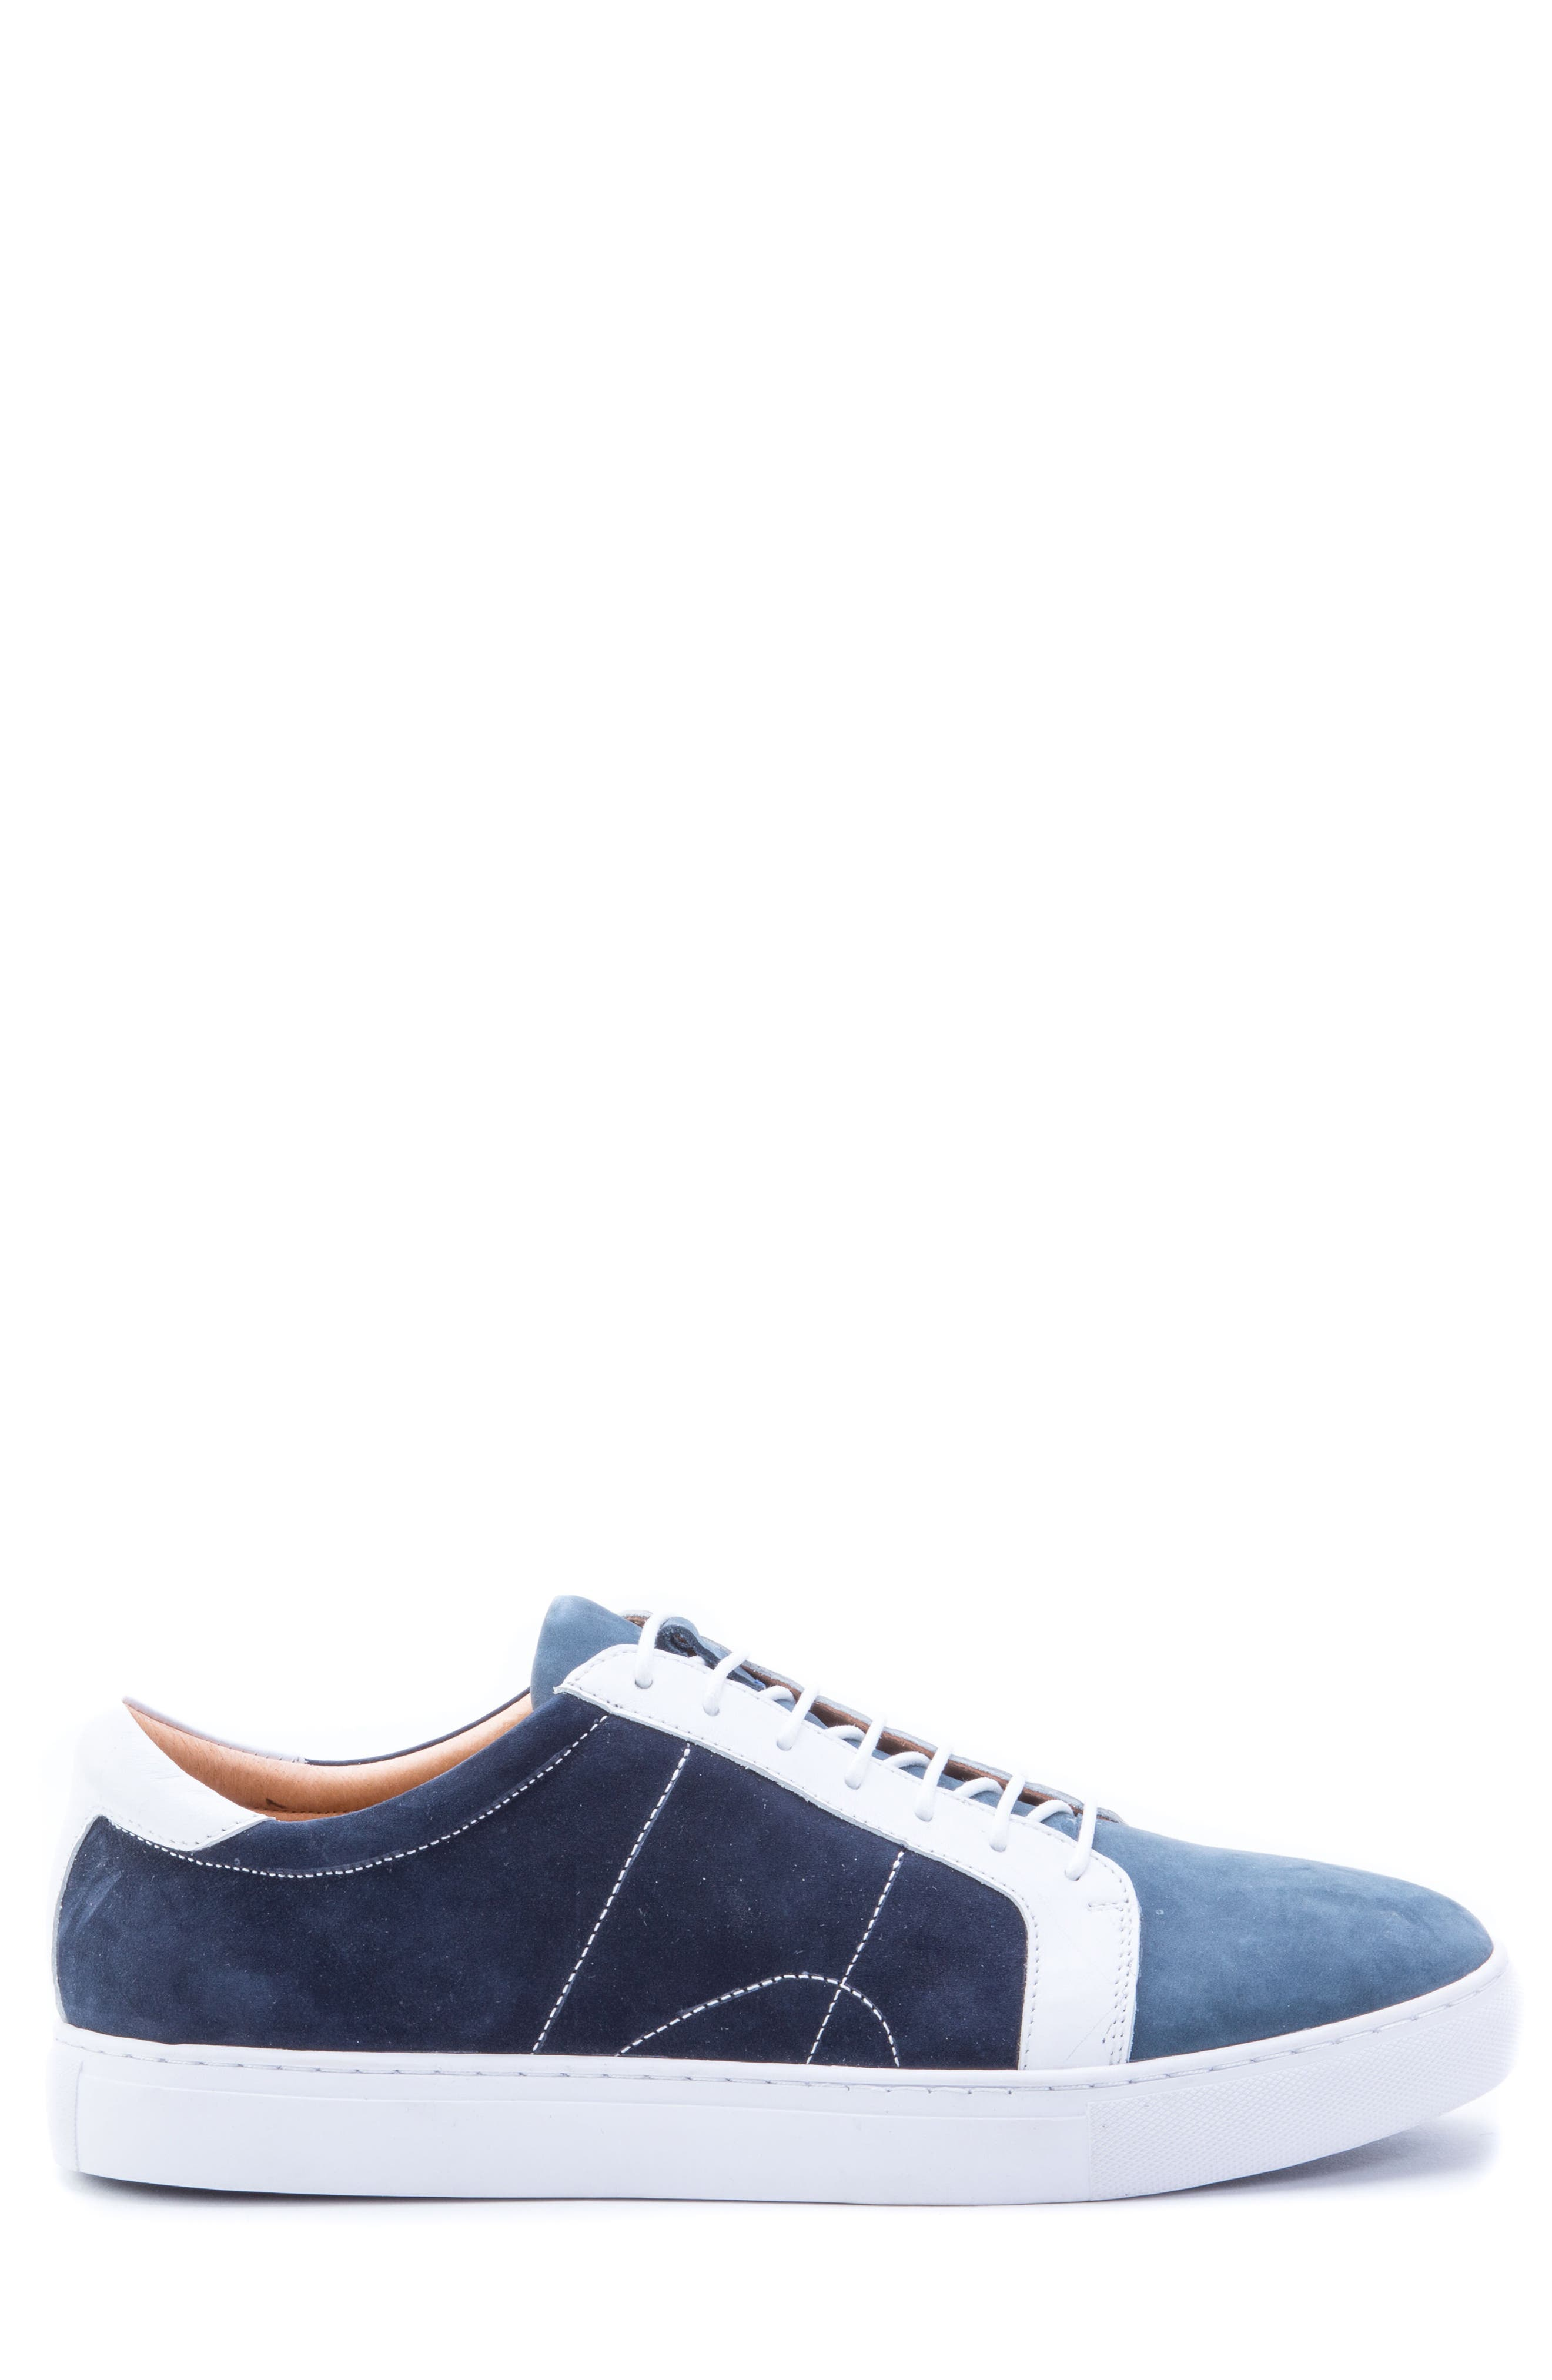 Gonzalo Low Top Sneaker,                             Alternate thumbnail 3, color,                             Navy Suede